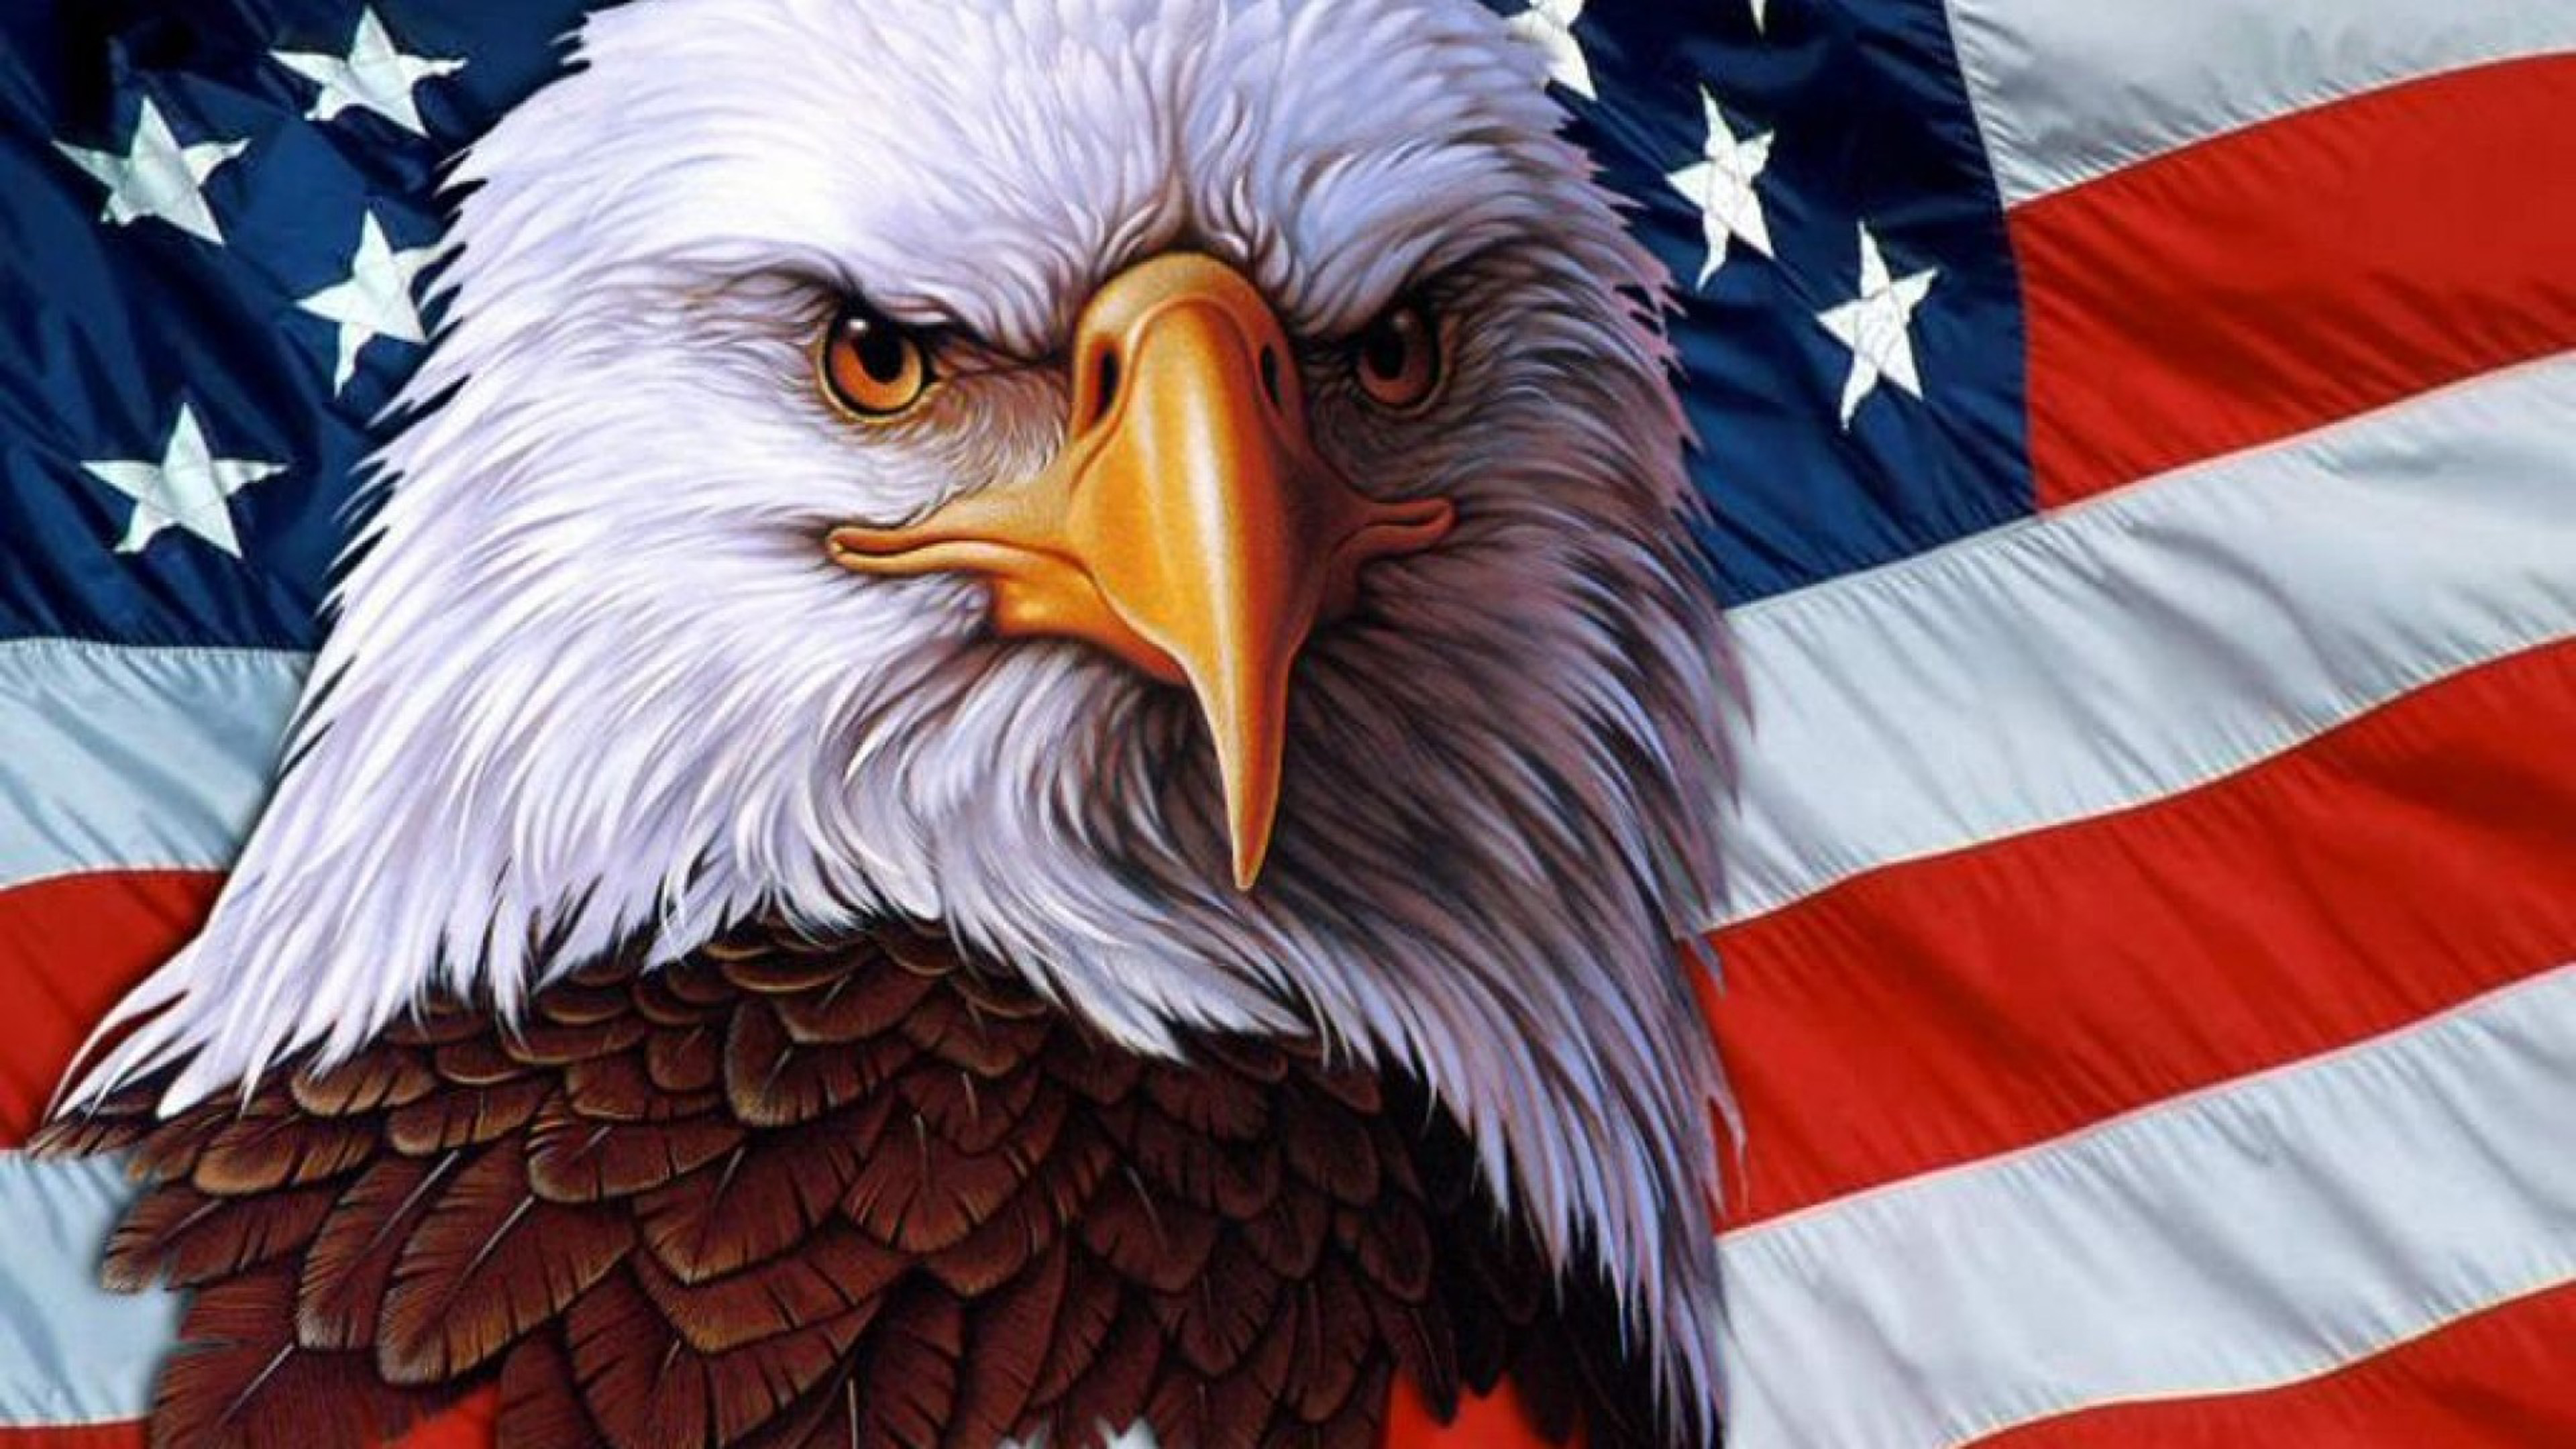 Fall Pc Wallpaper Free American Eagle Symbol Usa Independence Freedom 3840x216